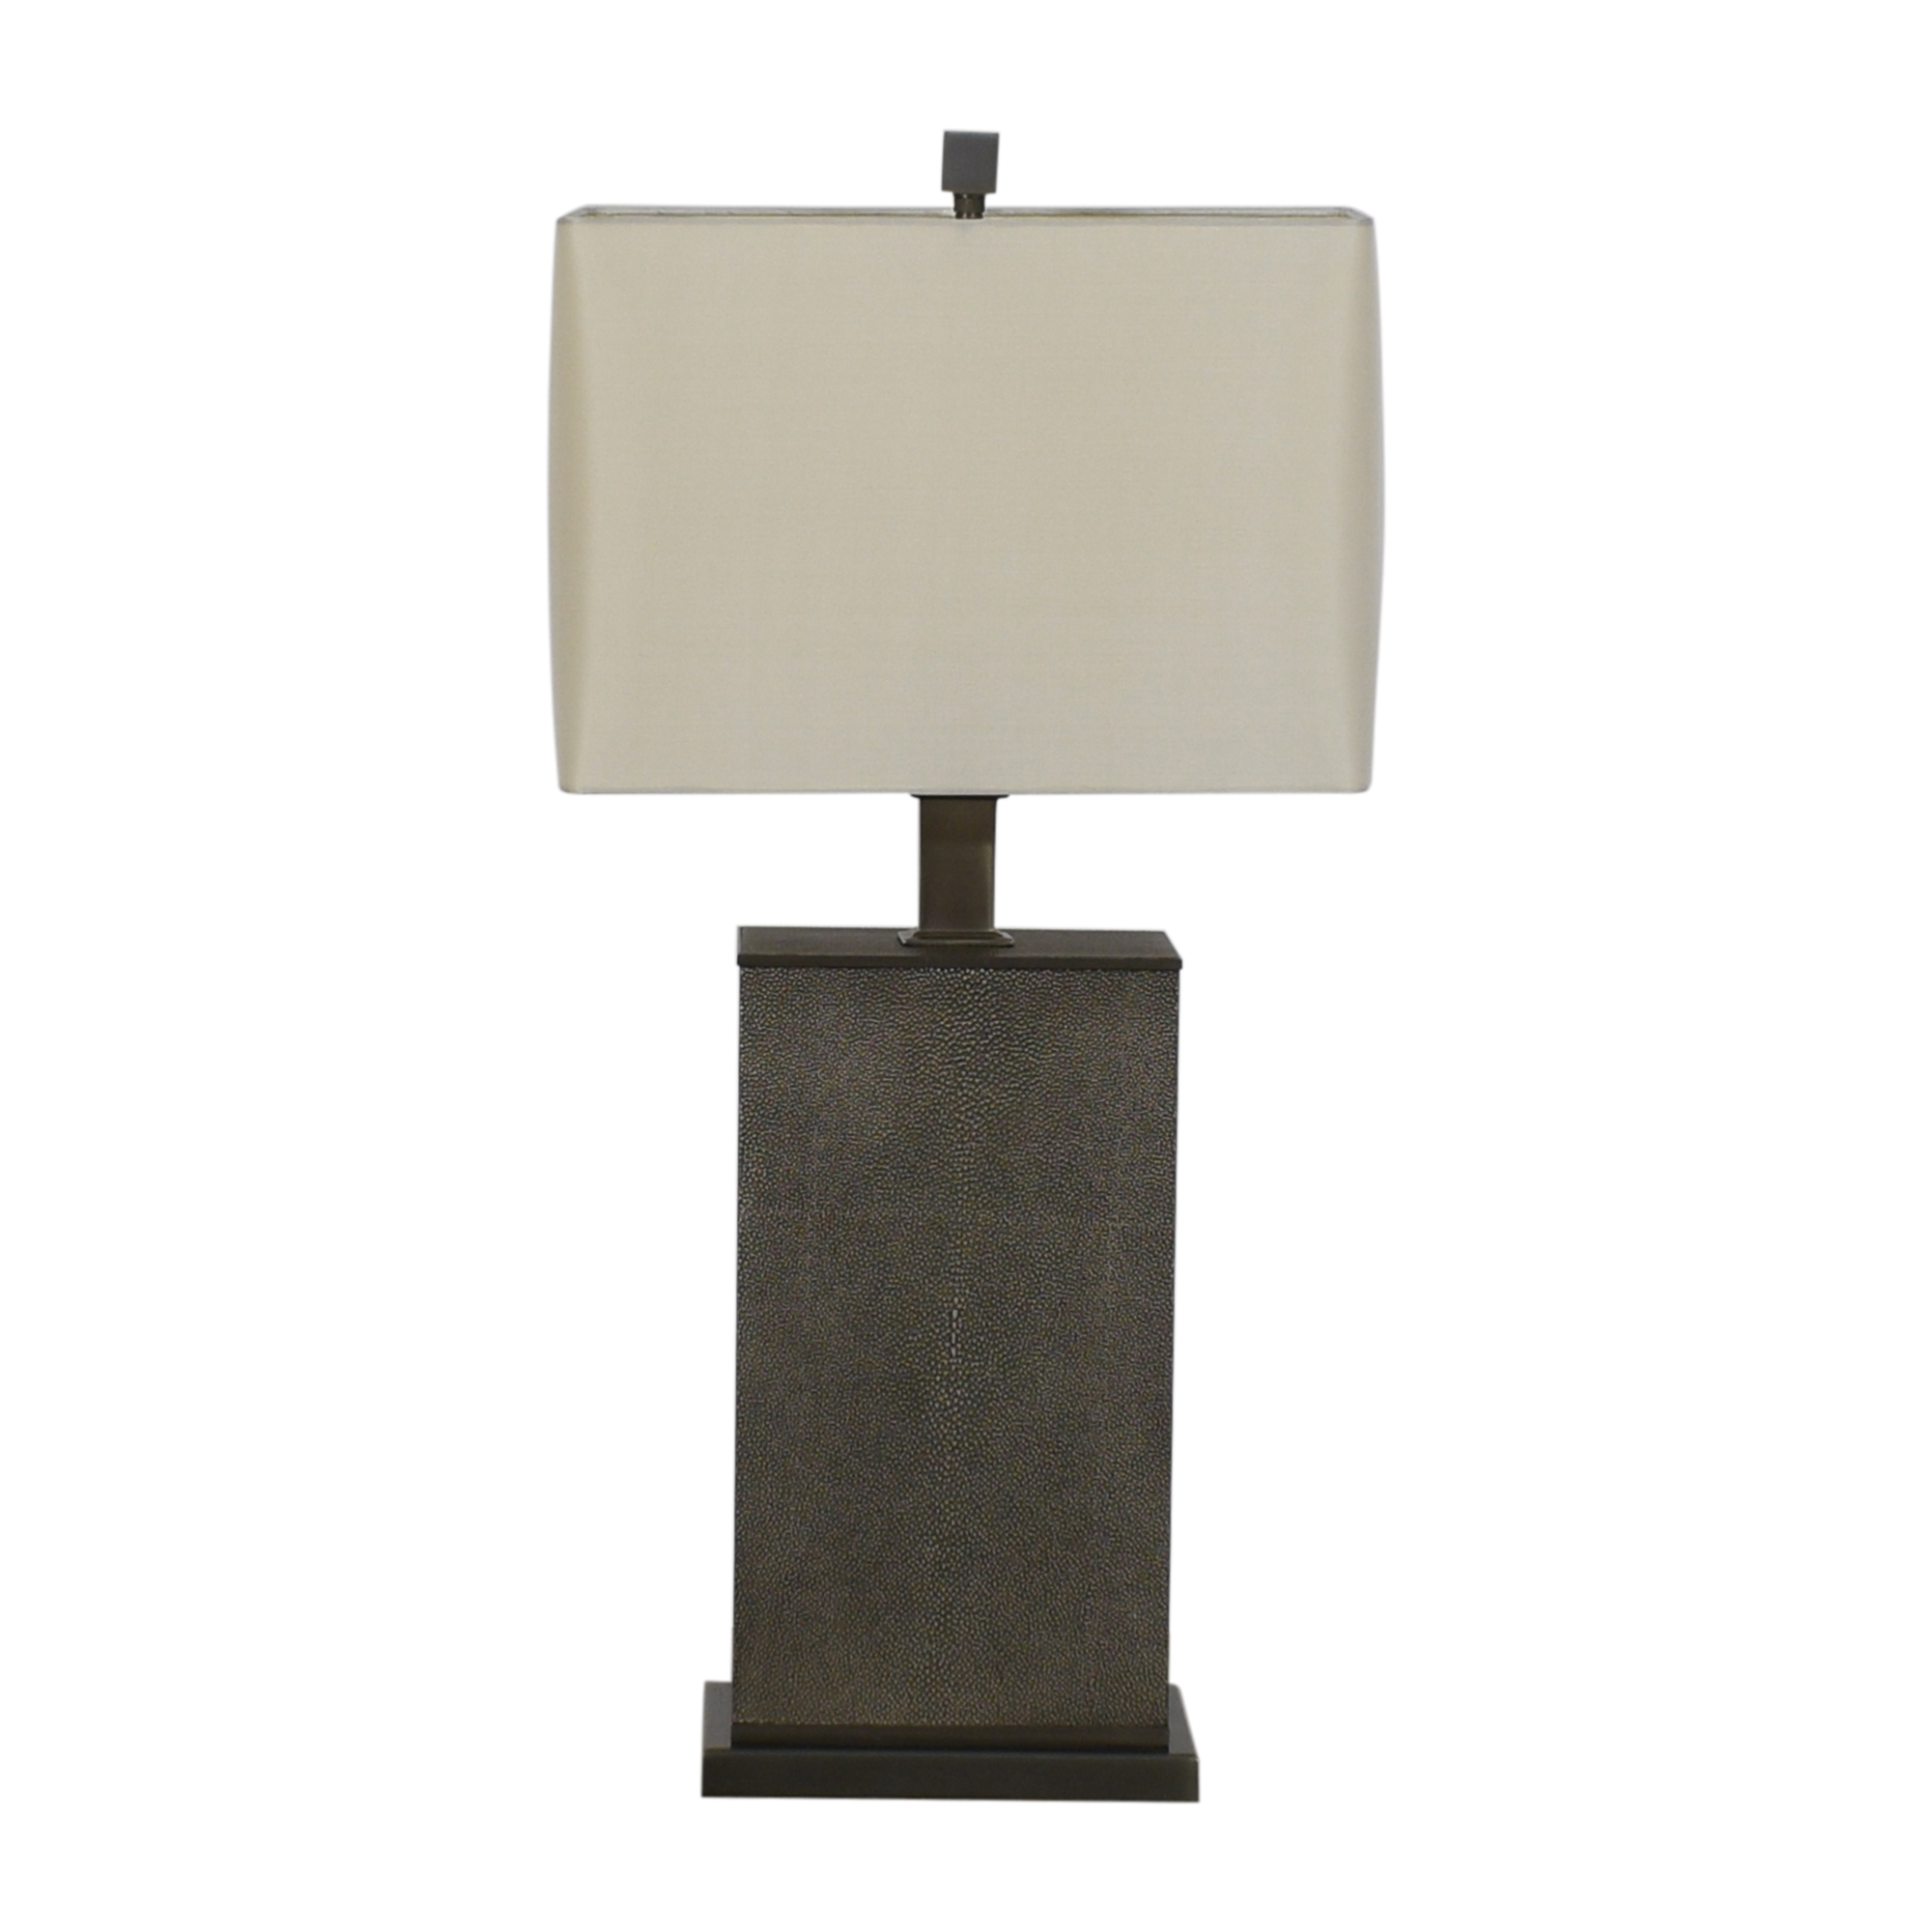 shop Restoration Hardware Delano Shagreen Rectangular Table Lamp Restoration Hardware Decor